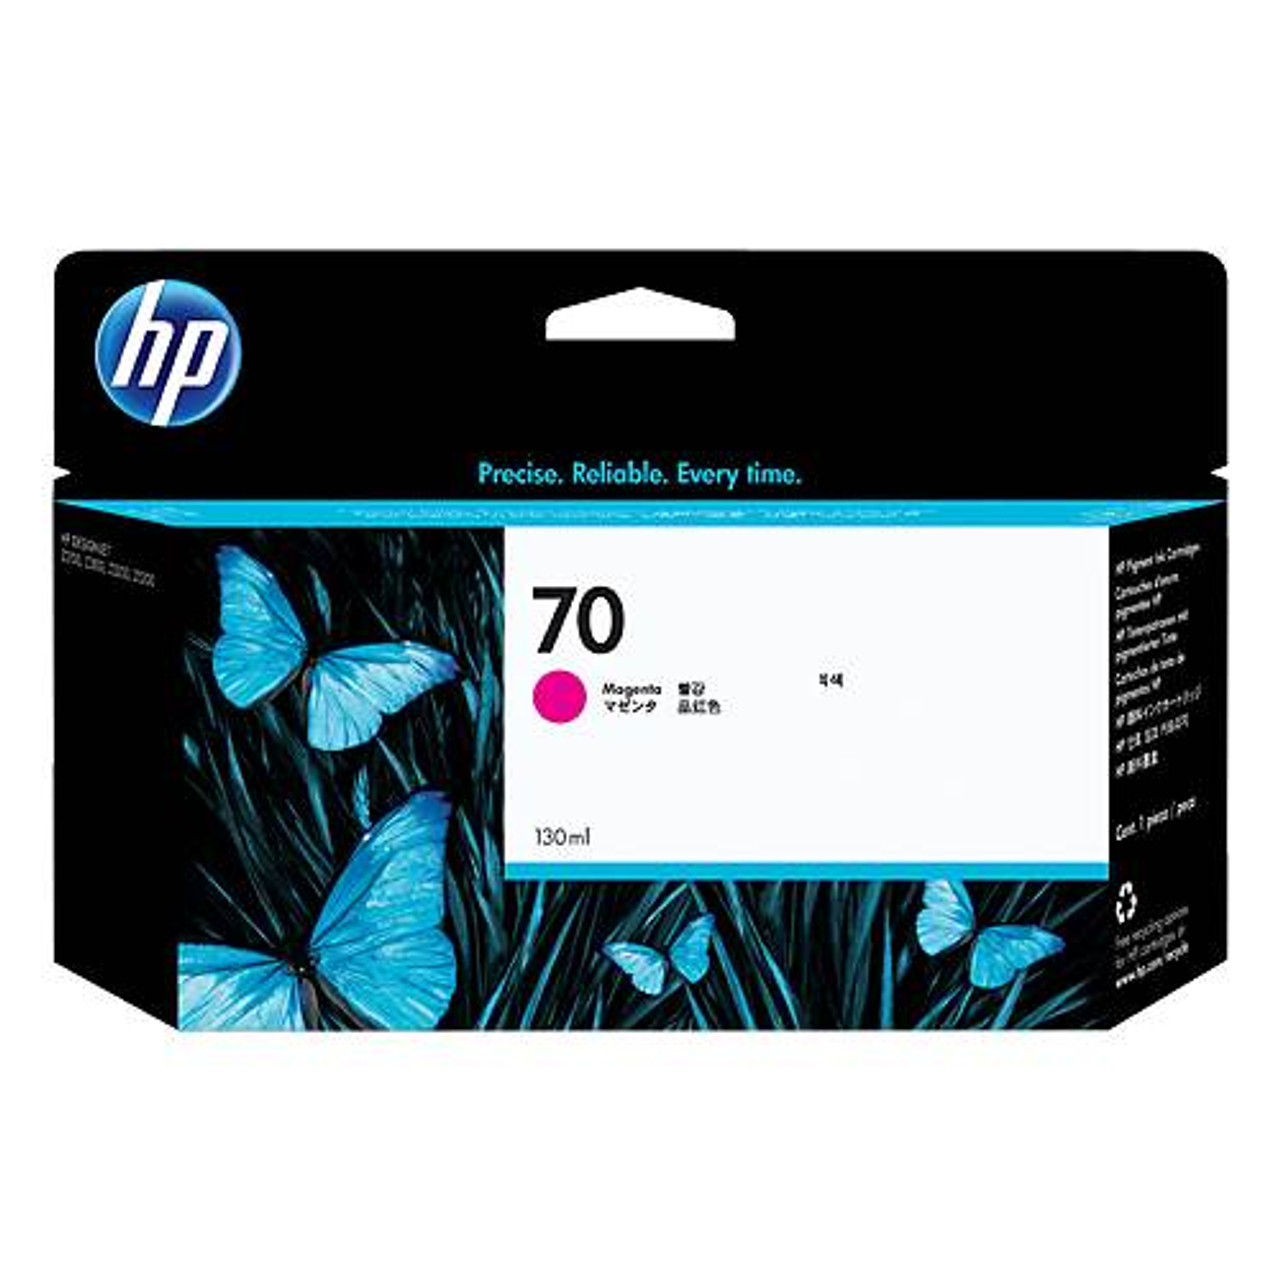 Image for HP 70 130ml Magenta Ink Cartridge (C9453A) CX Computer Superstore